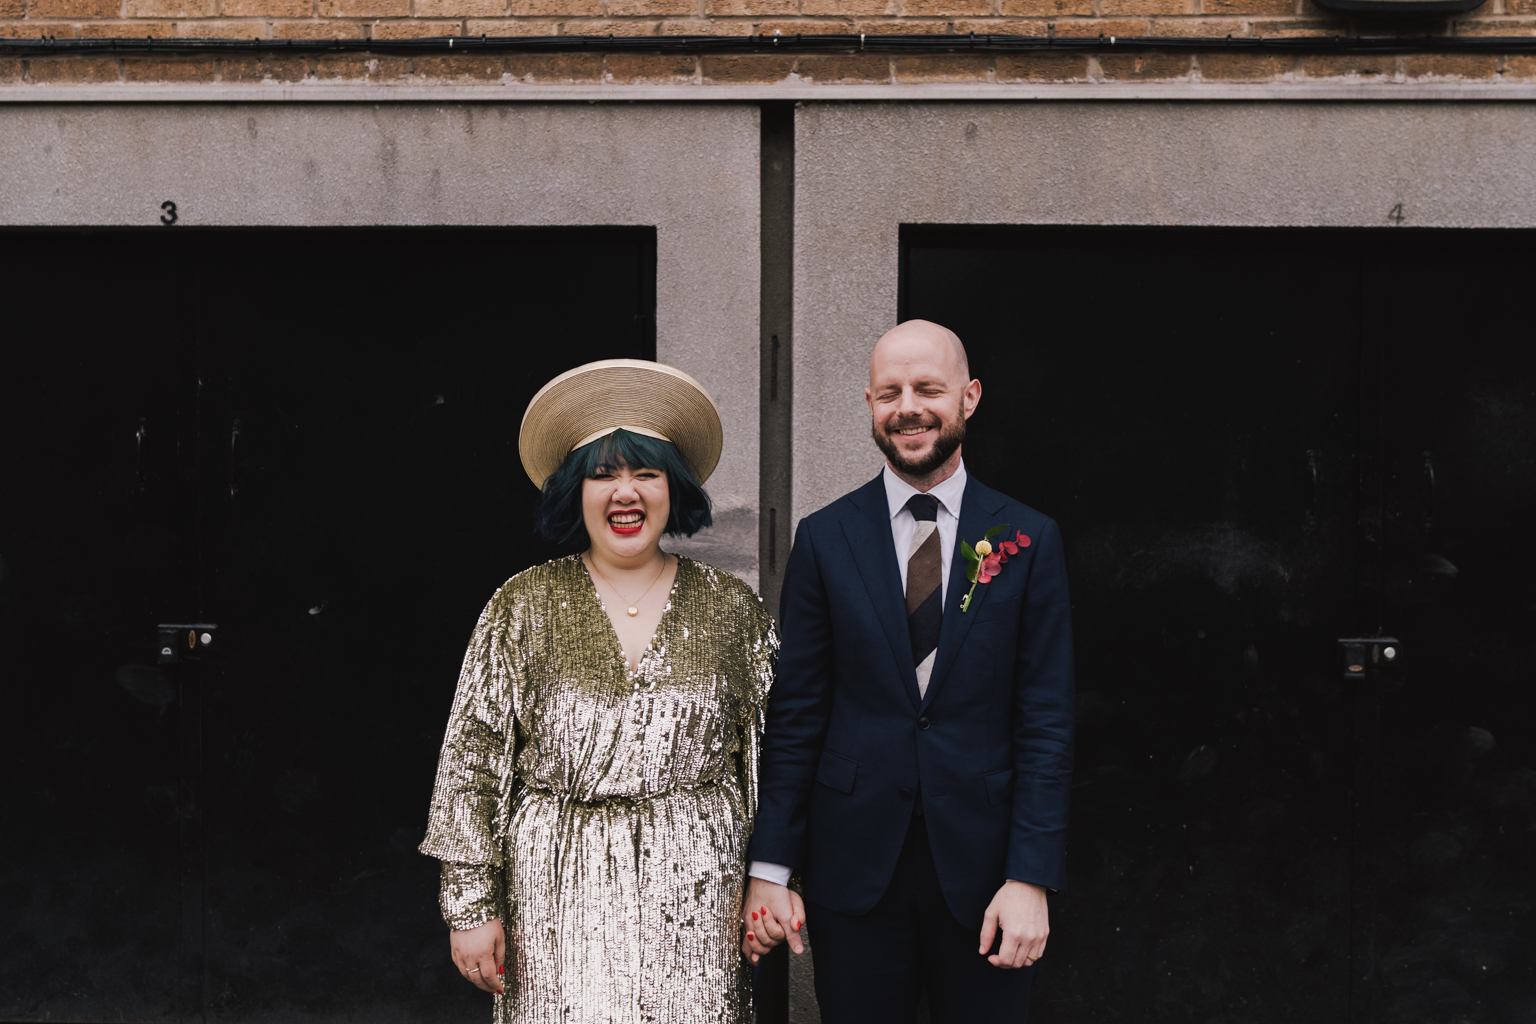 Bride and groom at South London wedding by Lisa Jane Photography